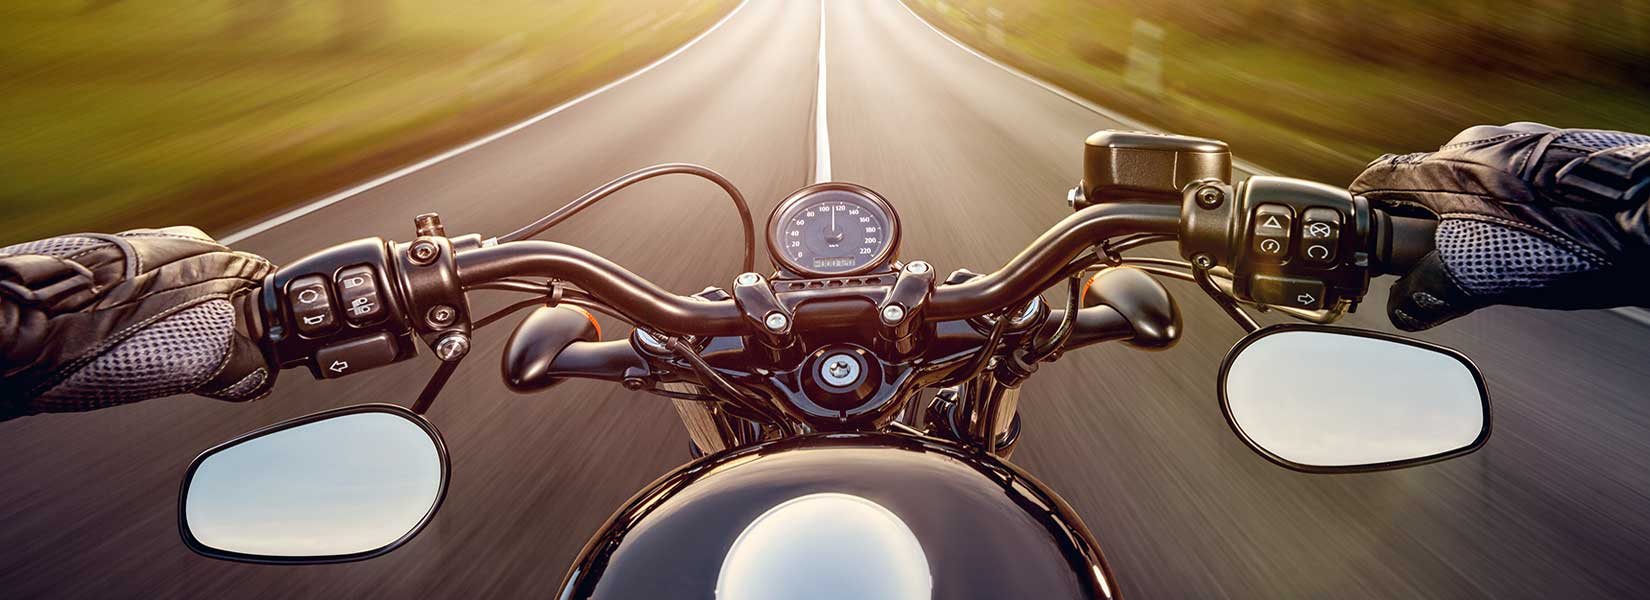 Why are Motorcycle Accidents in Bentonville So Dangerous?